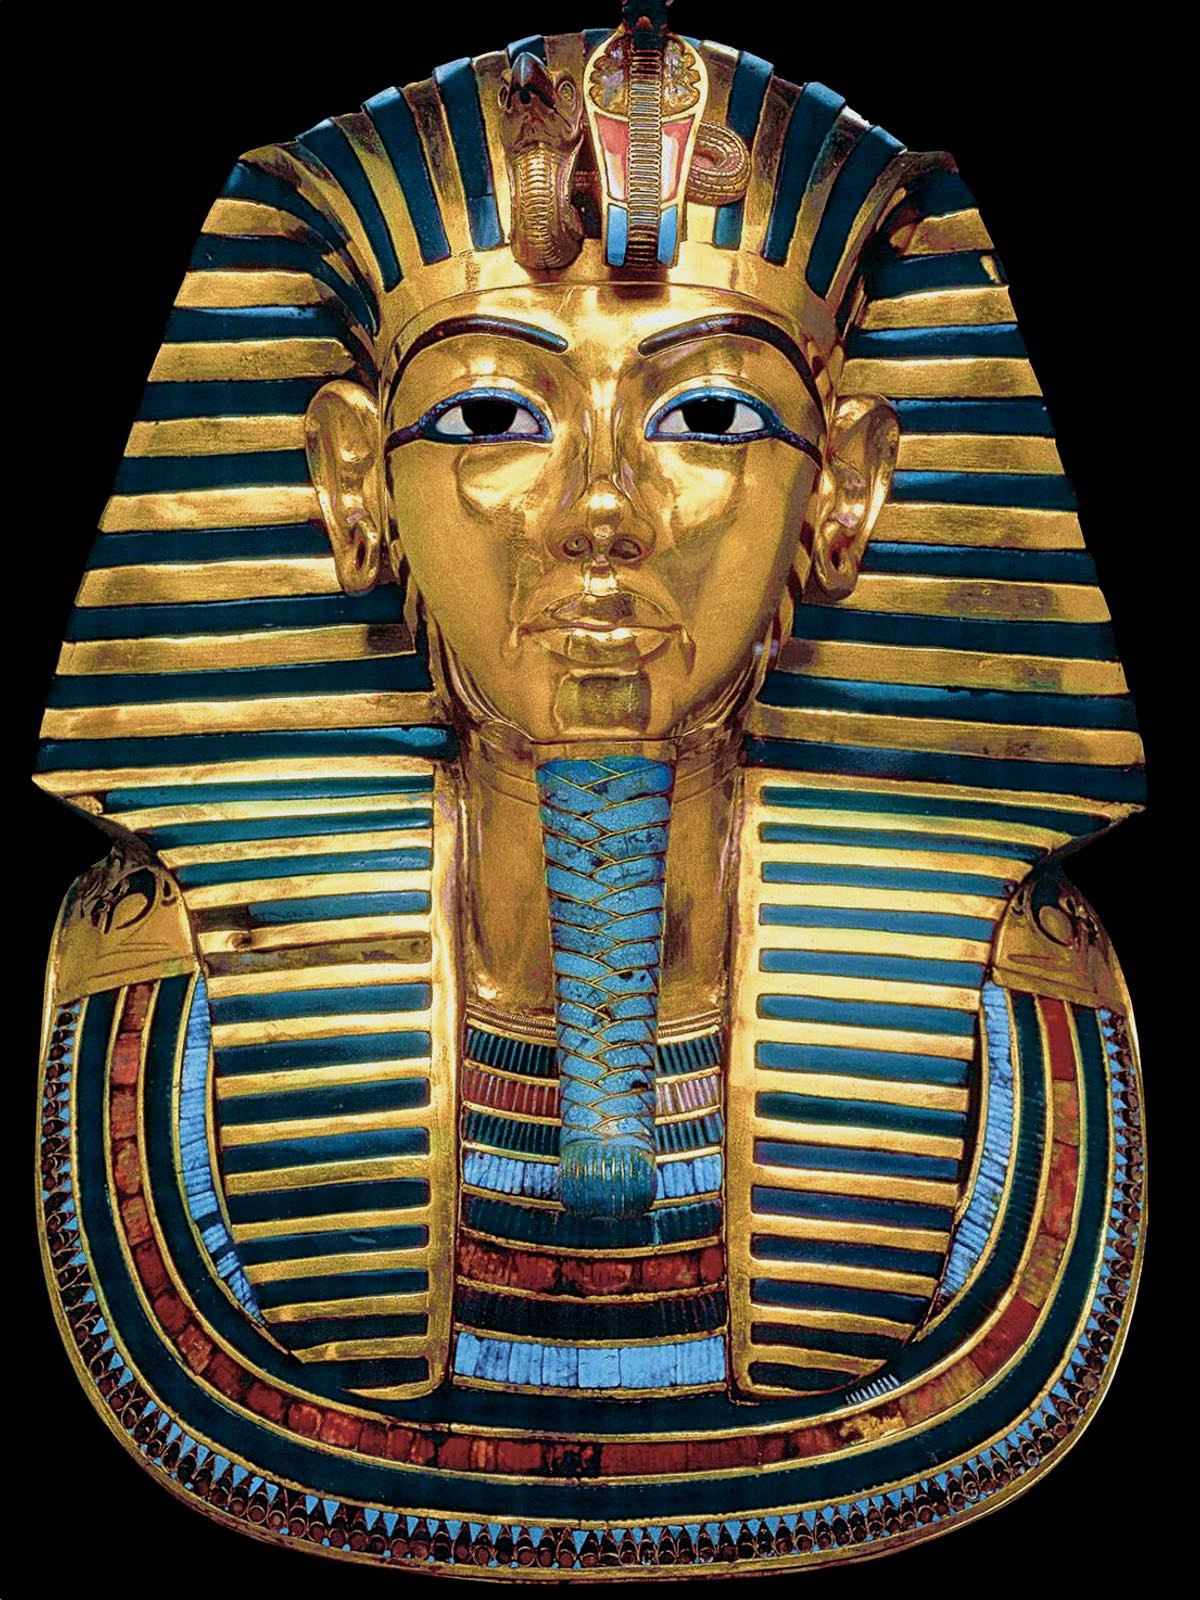 Tutankhamun: Curse of the Mummy | The Unredacted